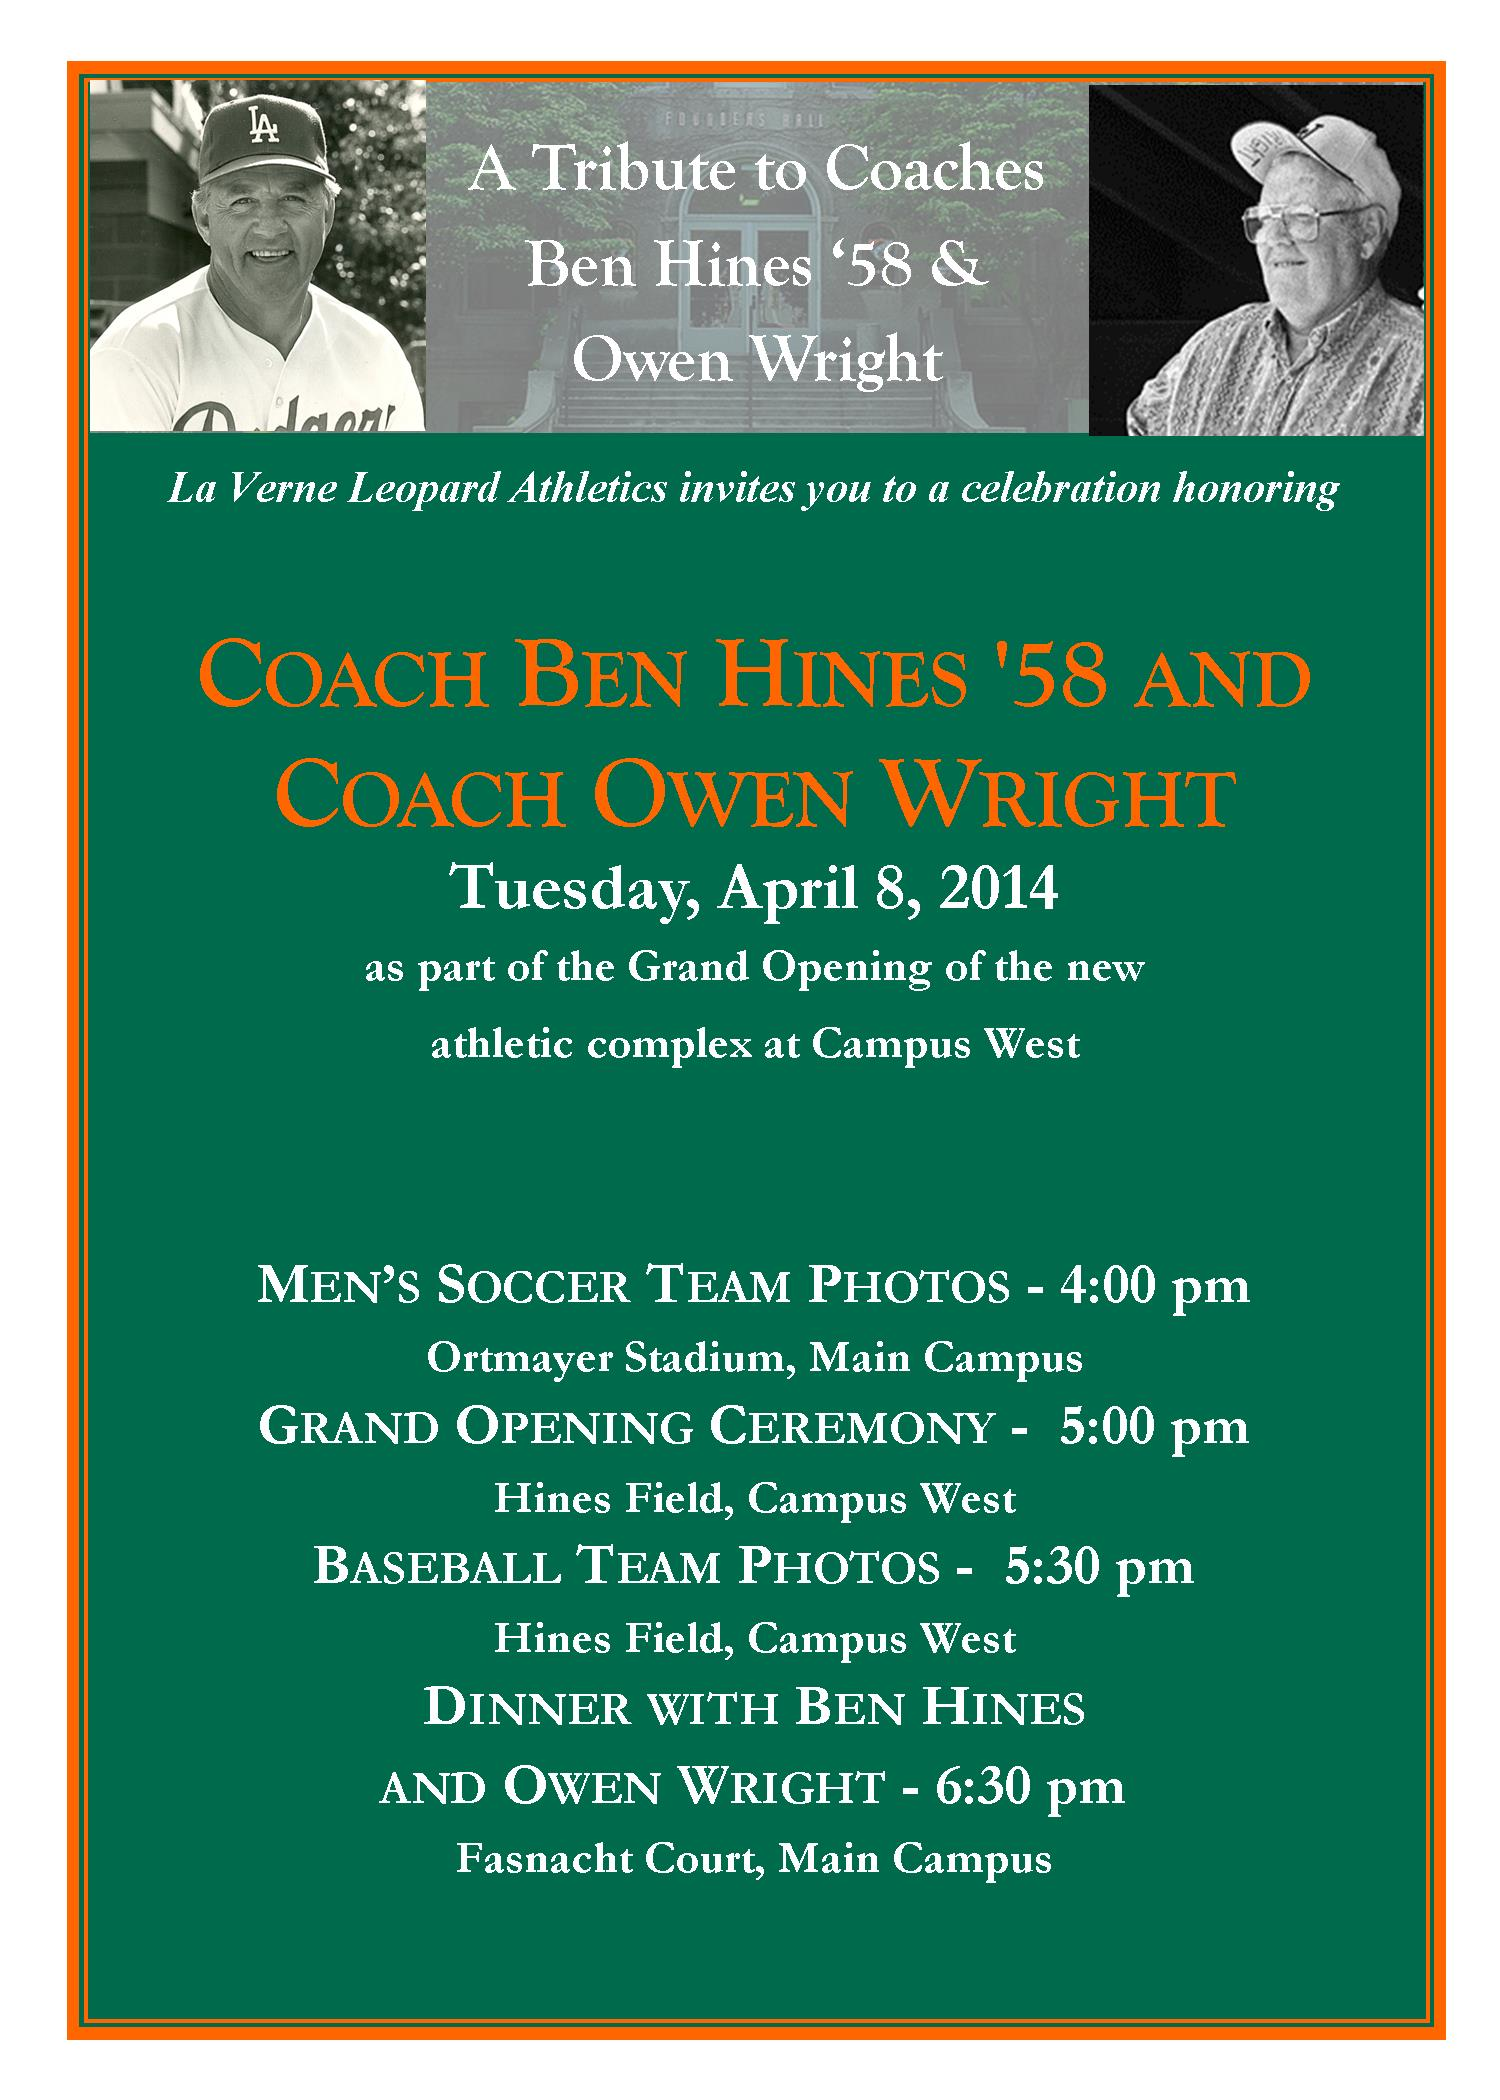 La Verne Leopard Athletics invites you to a celebration honoring  Coach Ben Hines '58 and Coach Owen Wright  on Tuesday, April 8, 2014 as part of the Grand Opening of the new athletic complex at Campus West    Men's Soccer Team Photos - 4:00 pm  Ortmayer Stadium, Main Campus  Grand Opening Ceremony - 5:00 pm  Hines Field, Campus West  Baseball Team Photos - 5:30 pm  Hines Field, Campus West  Dinner with Ben Hines and Owen Wright - 6:30 pm  Fasnacht Court, Main Campus